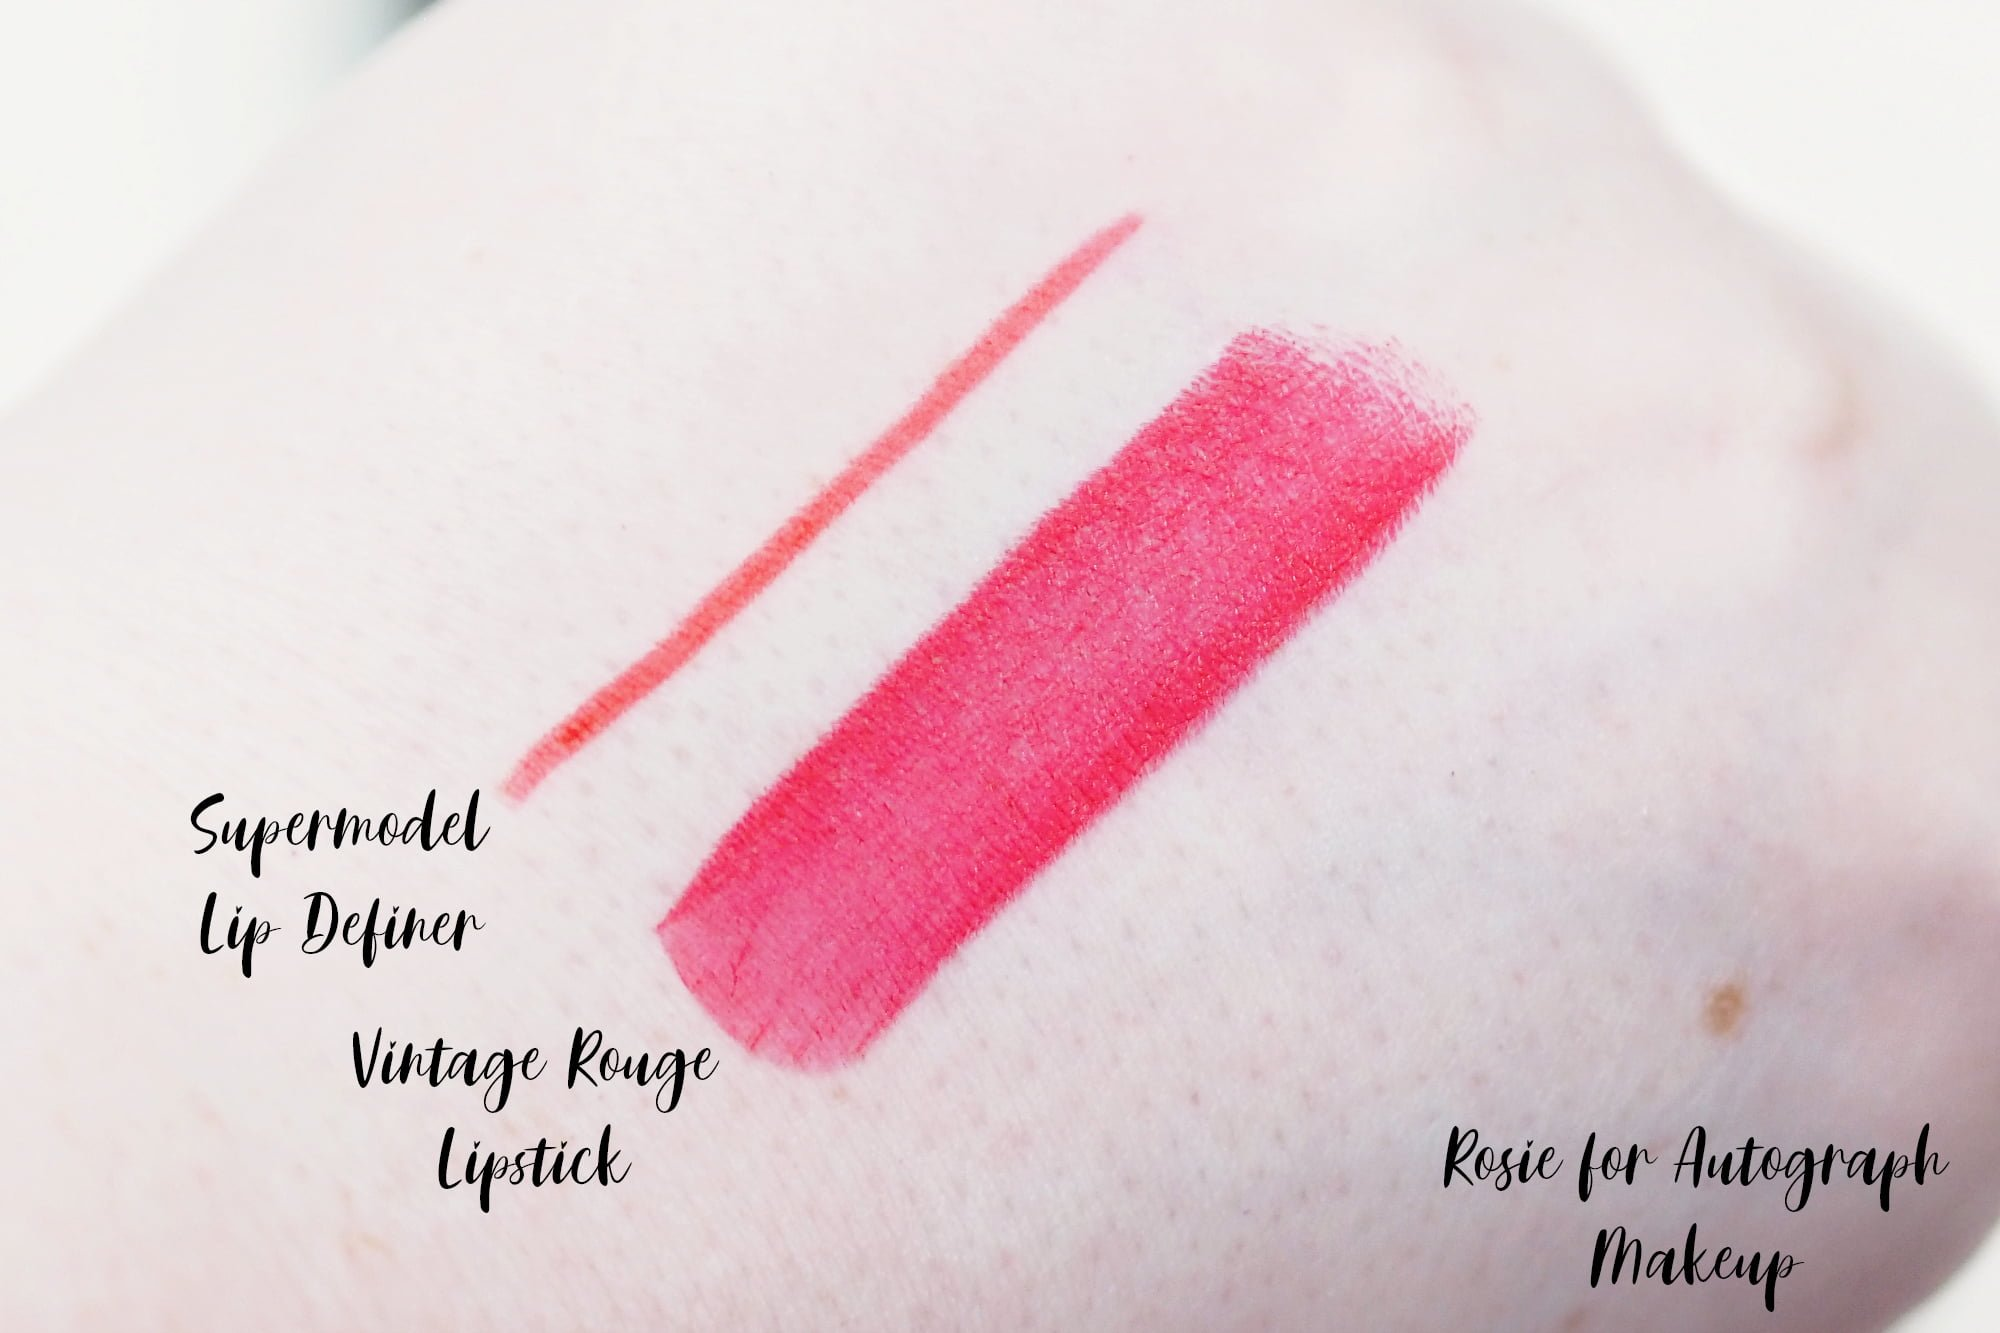 Review and Swatches of the Rosie for Autograph Lipstick and Lip Definer in Supermodel and Vintage Rouge - the perfect red lipstick and liner.